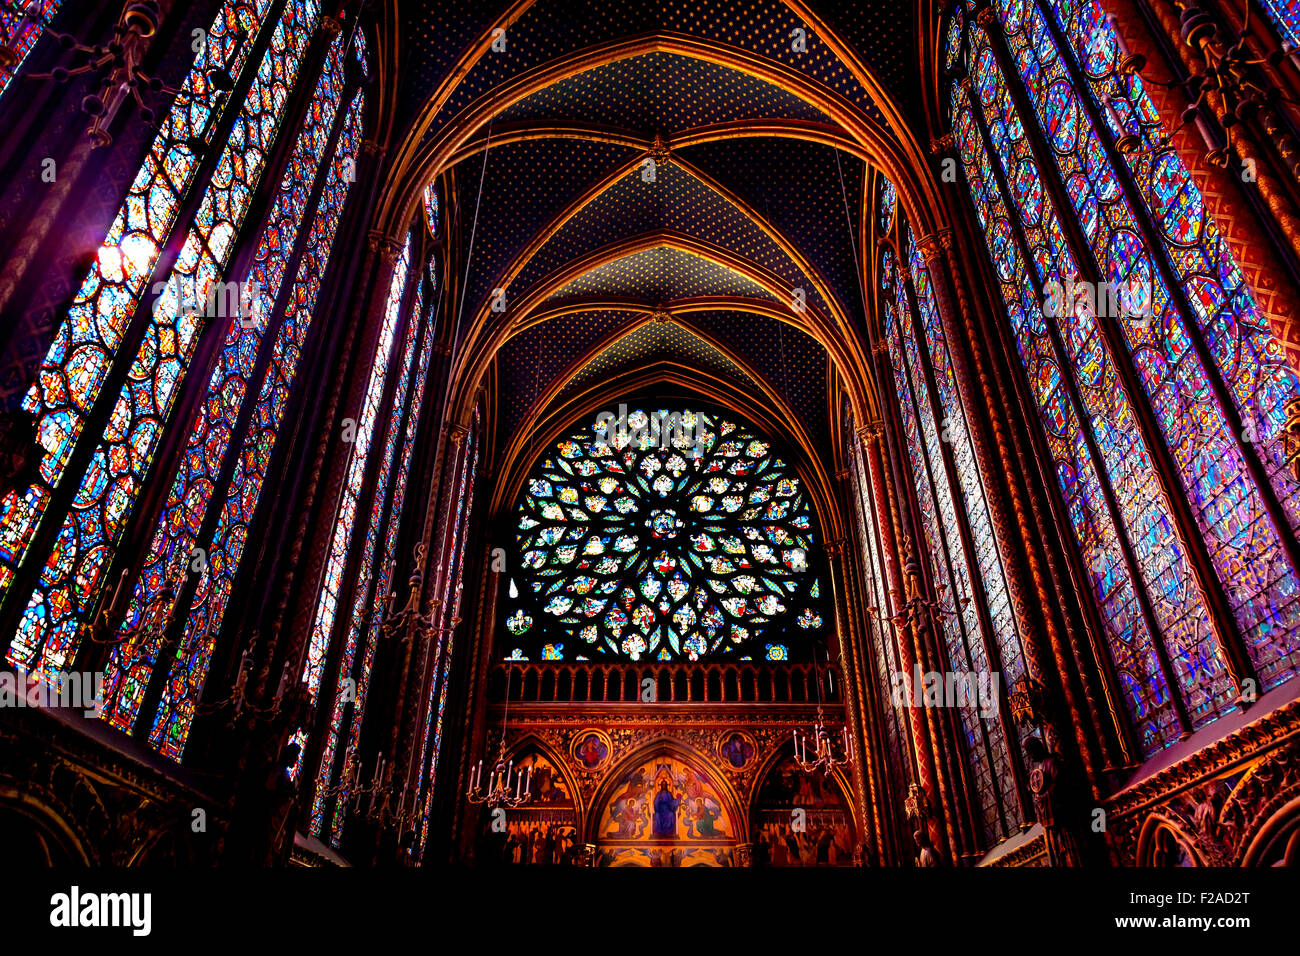 Rose Window Stained Glass Cathedral Ceiling Saint Chapelle Paris France.  Saint King Louis 9th created Sainte Chapell - Stock Image